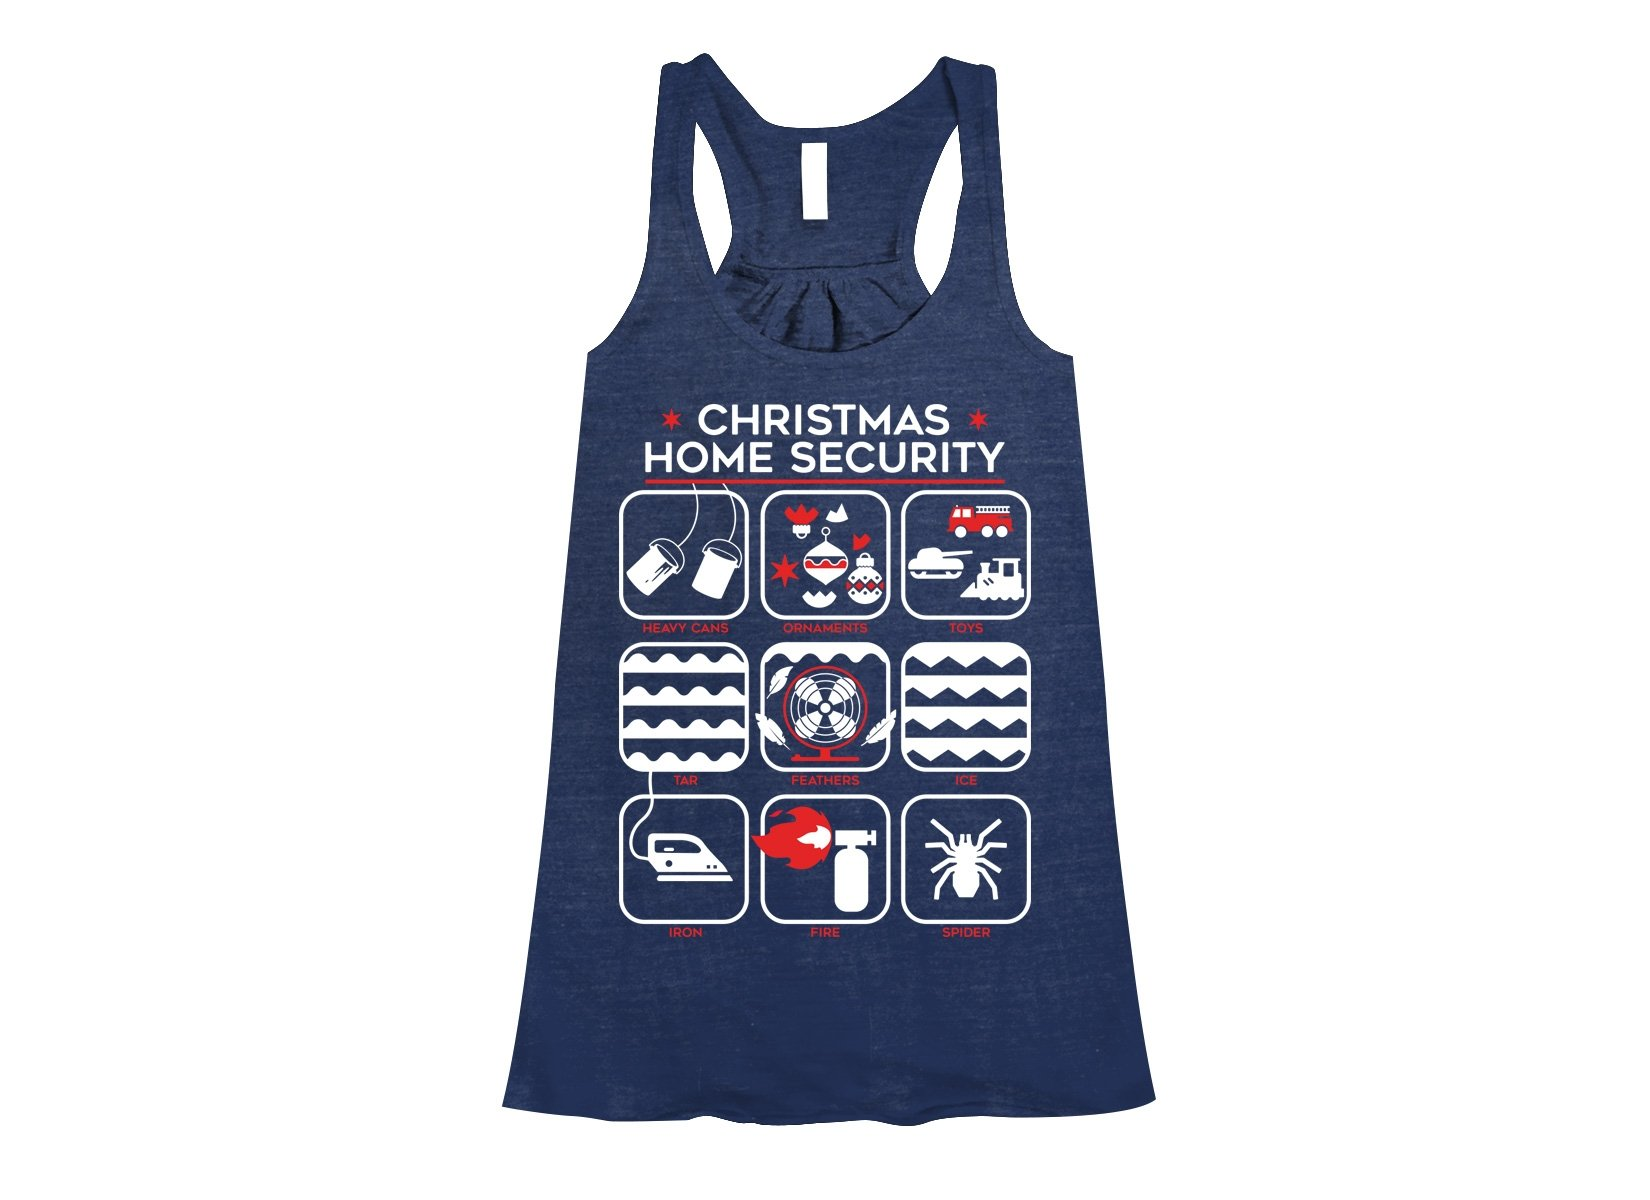 Christmas Home Security on Womens Tanks T-Shirt